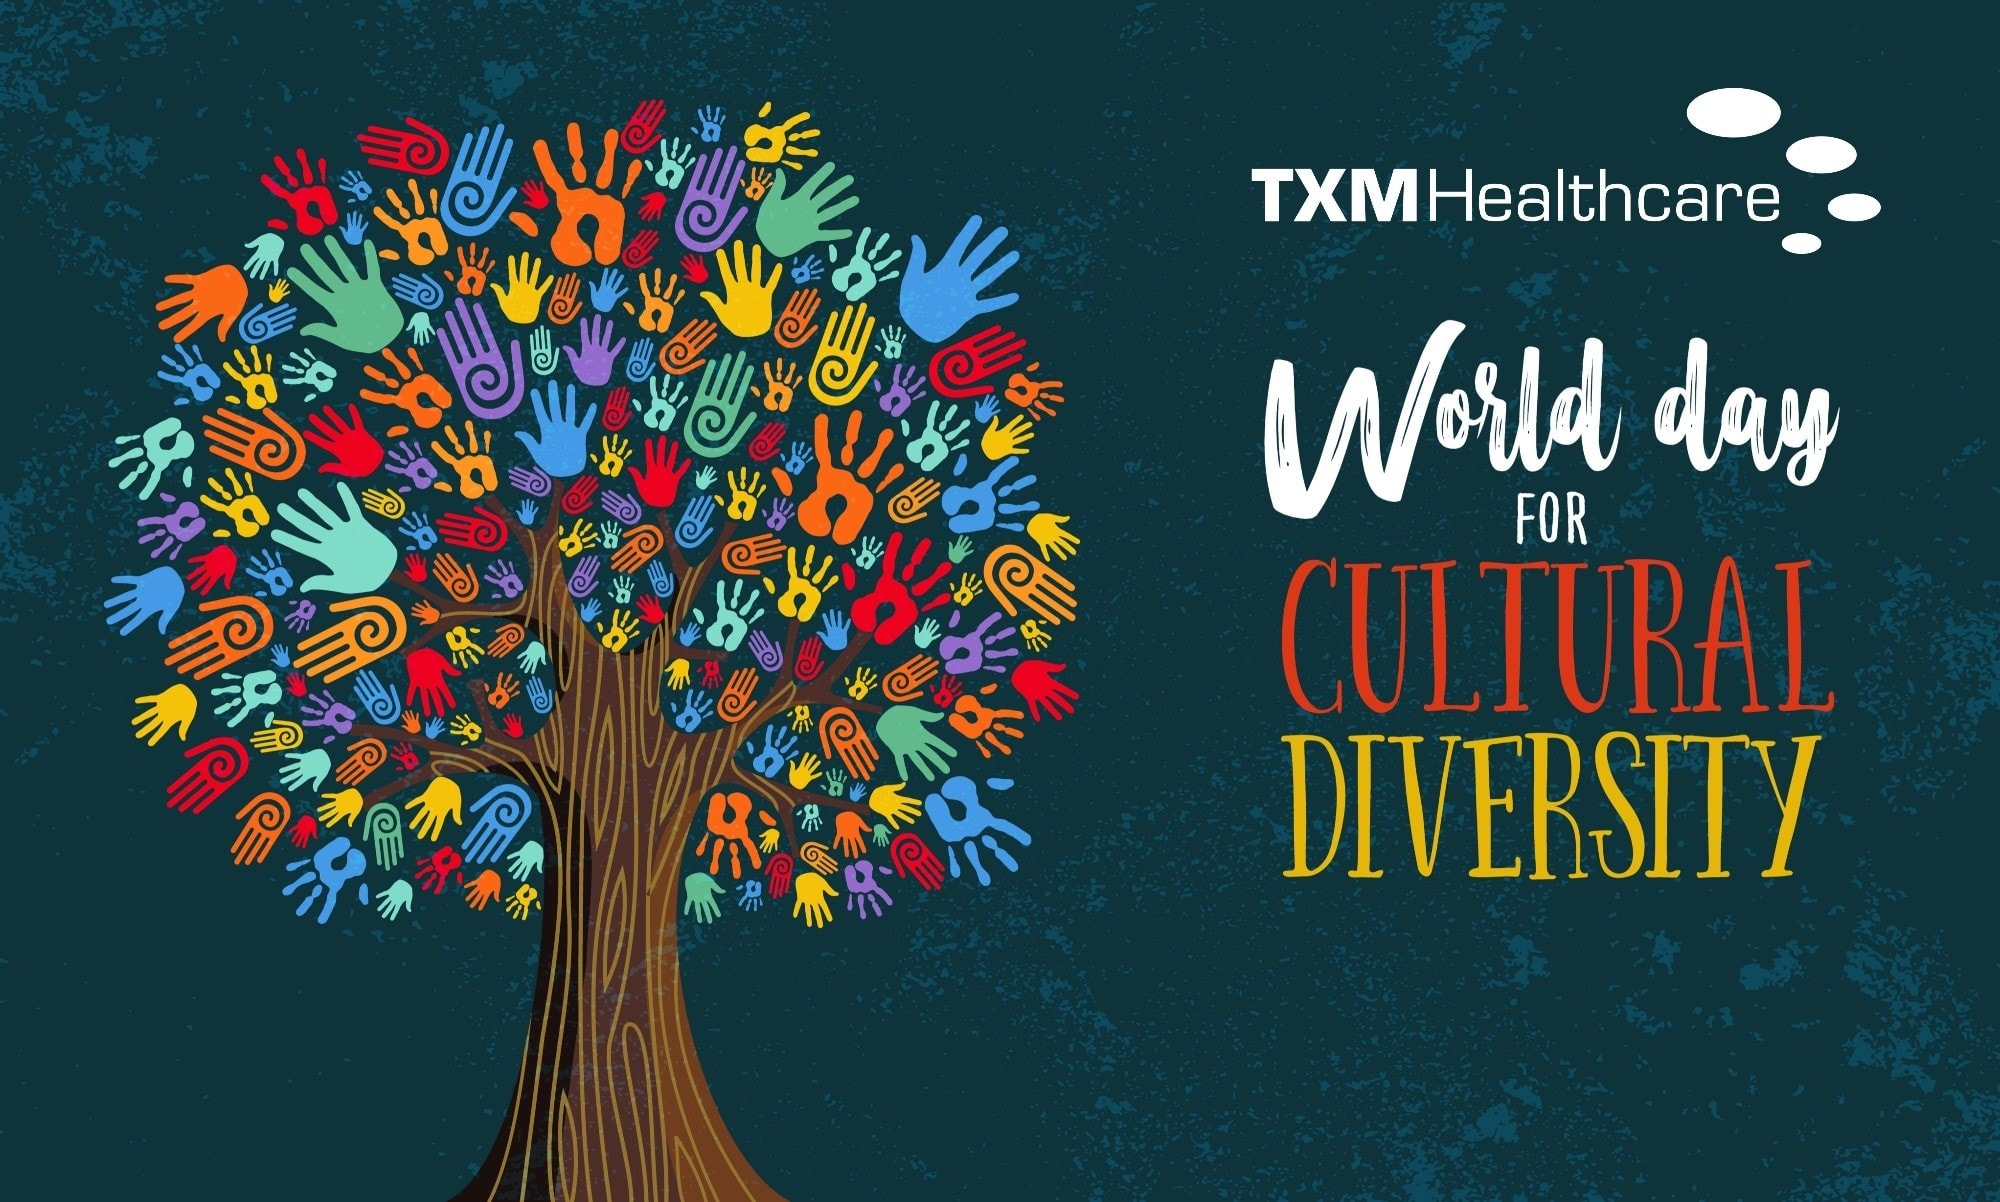 Today is World Cultural Diversity Day. At TXM Healthcare we welcome and encourag…